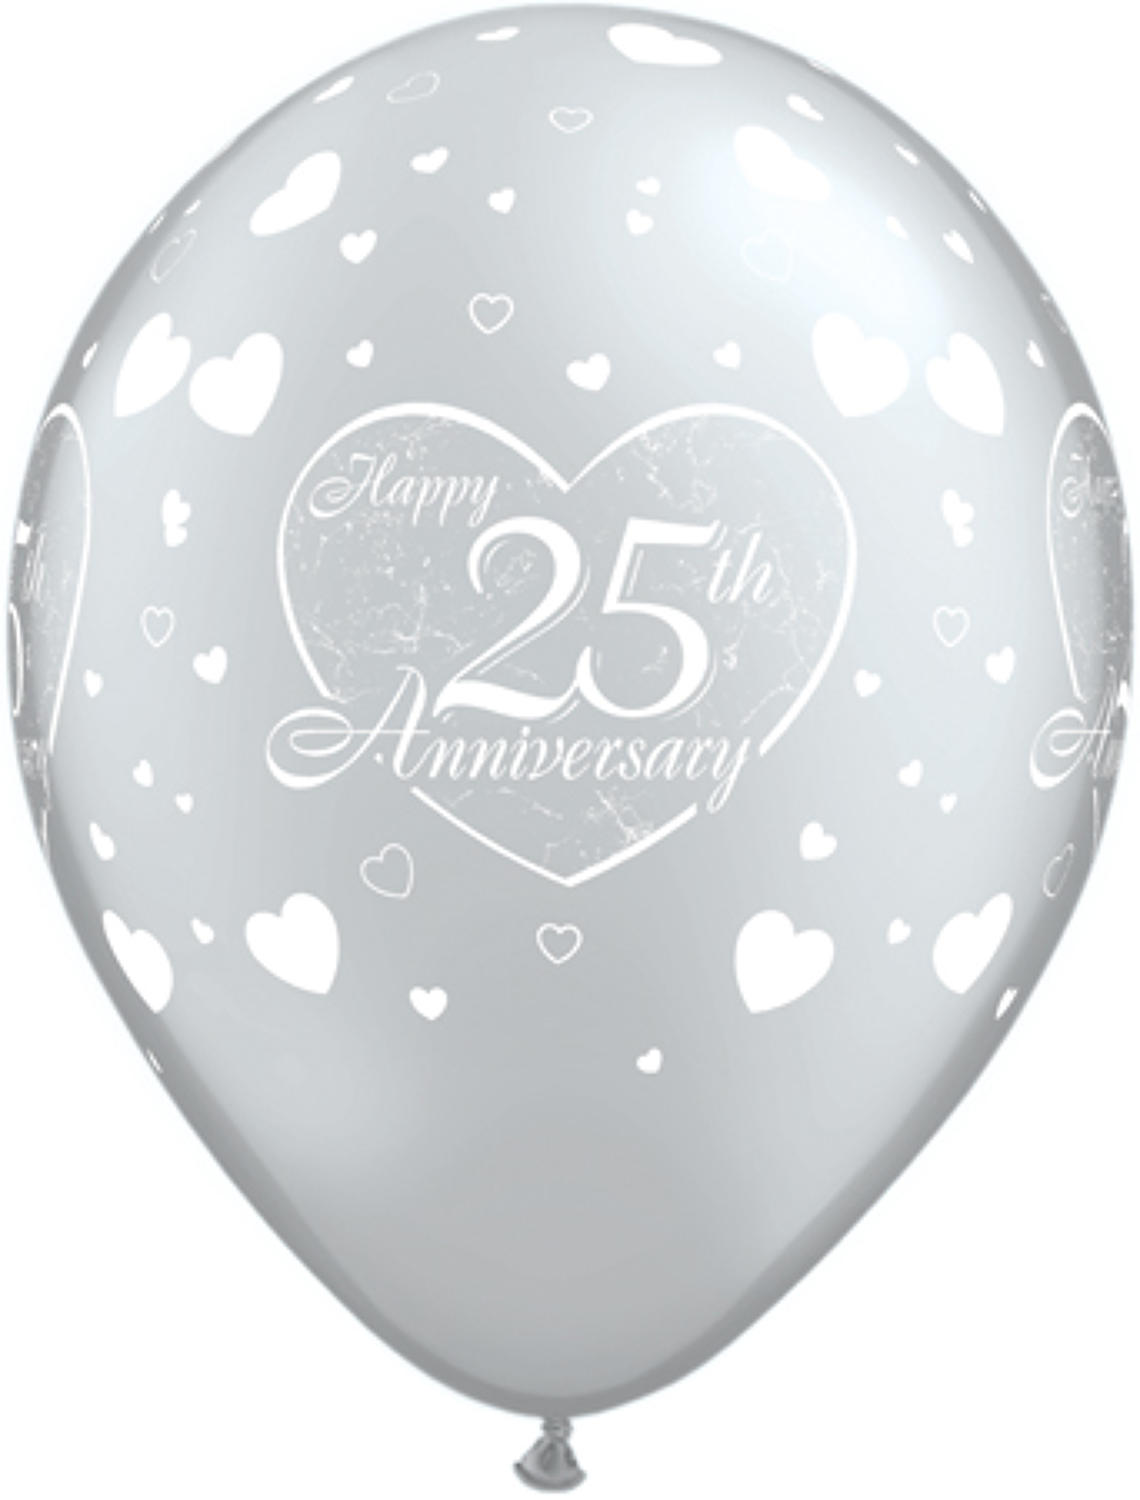 Happy 25th Anniversary latex balloons